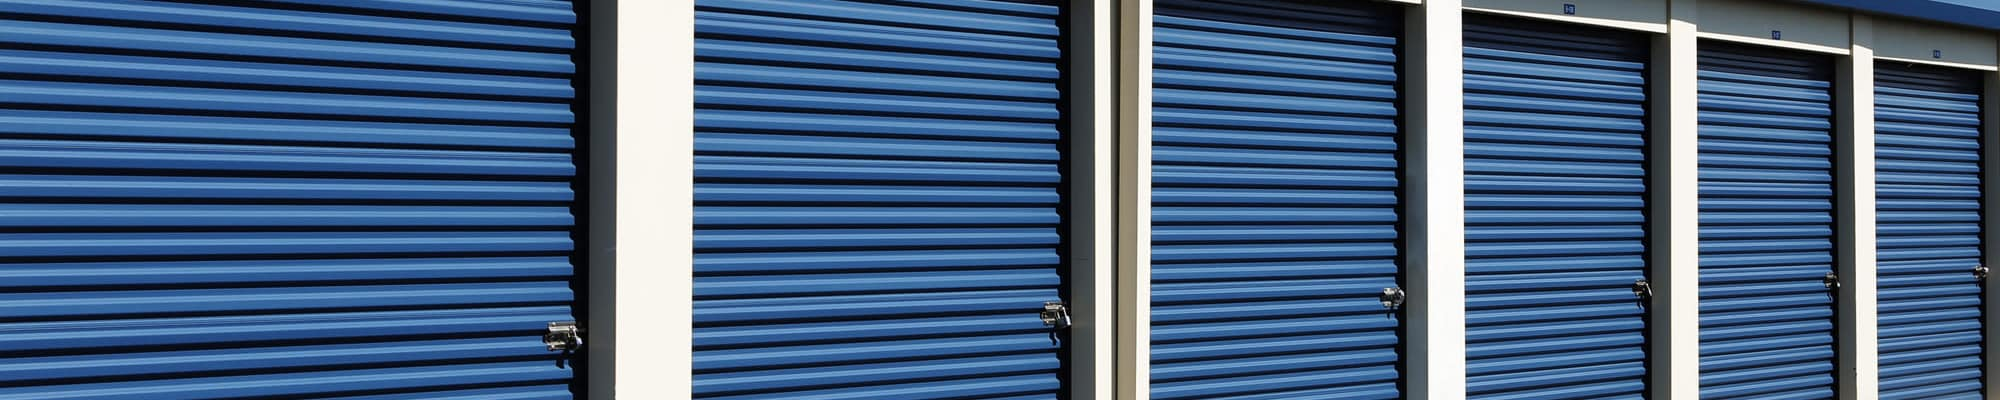 Business storage at Midgard Self Storage in Greenville, South Carolina